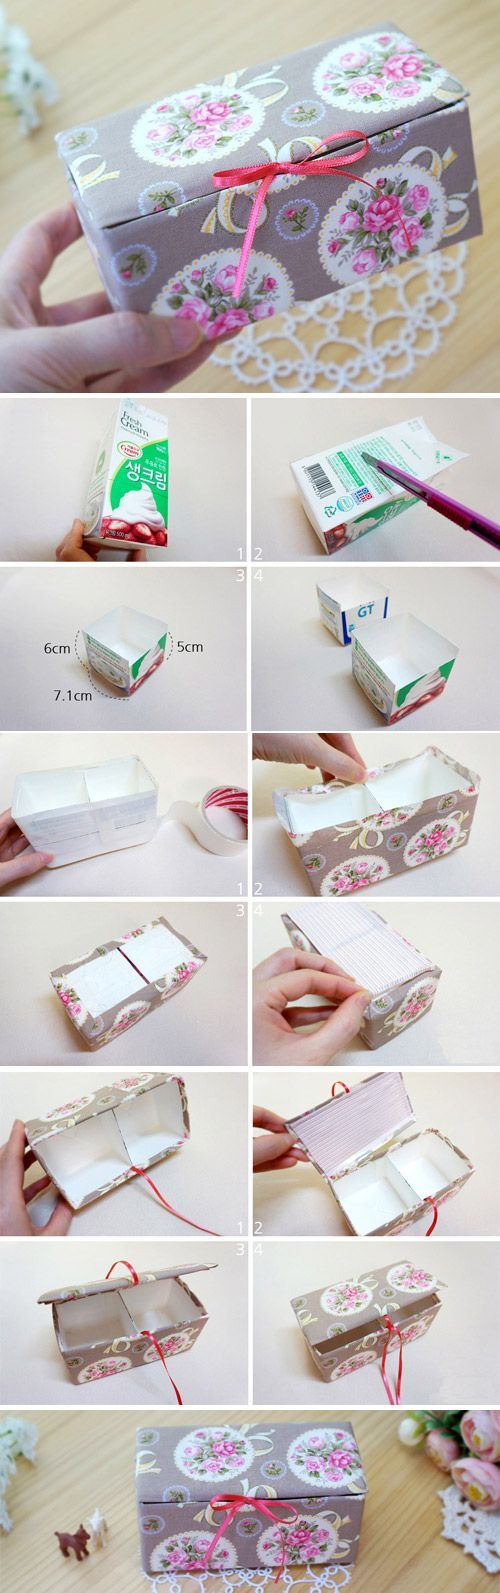 Creative DIY Ideas: DIY Upcycled Milk Carton Storage Box Tutorial in P...